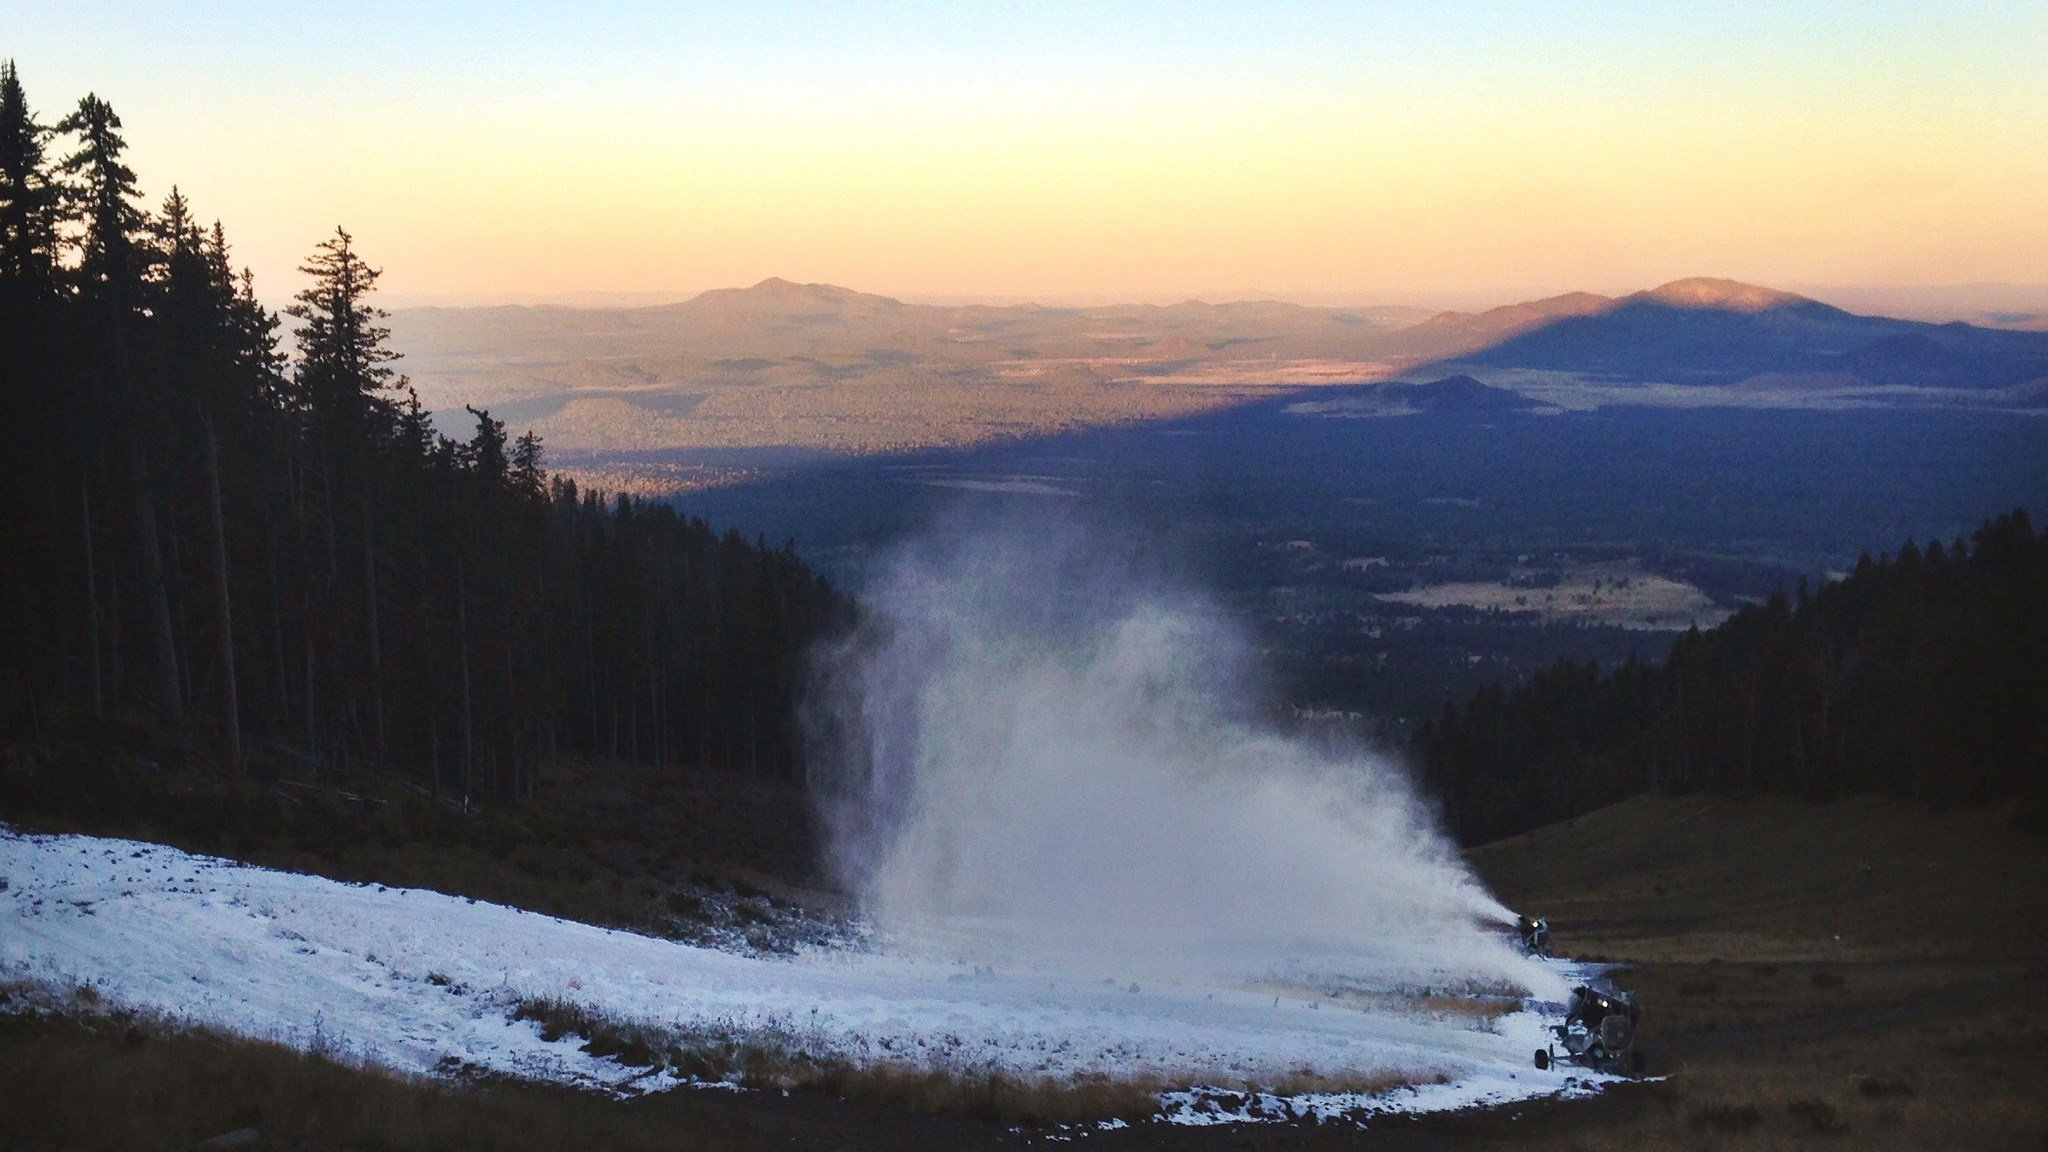 Arizona Snowbowl has delayed their 2017 winter opening due to warm temperatures, according to a release. (Source: Arizona Snowbowl)